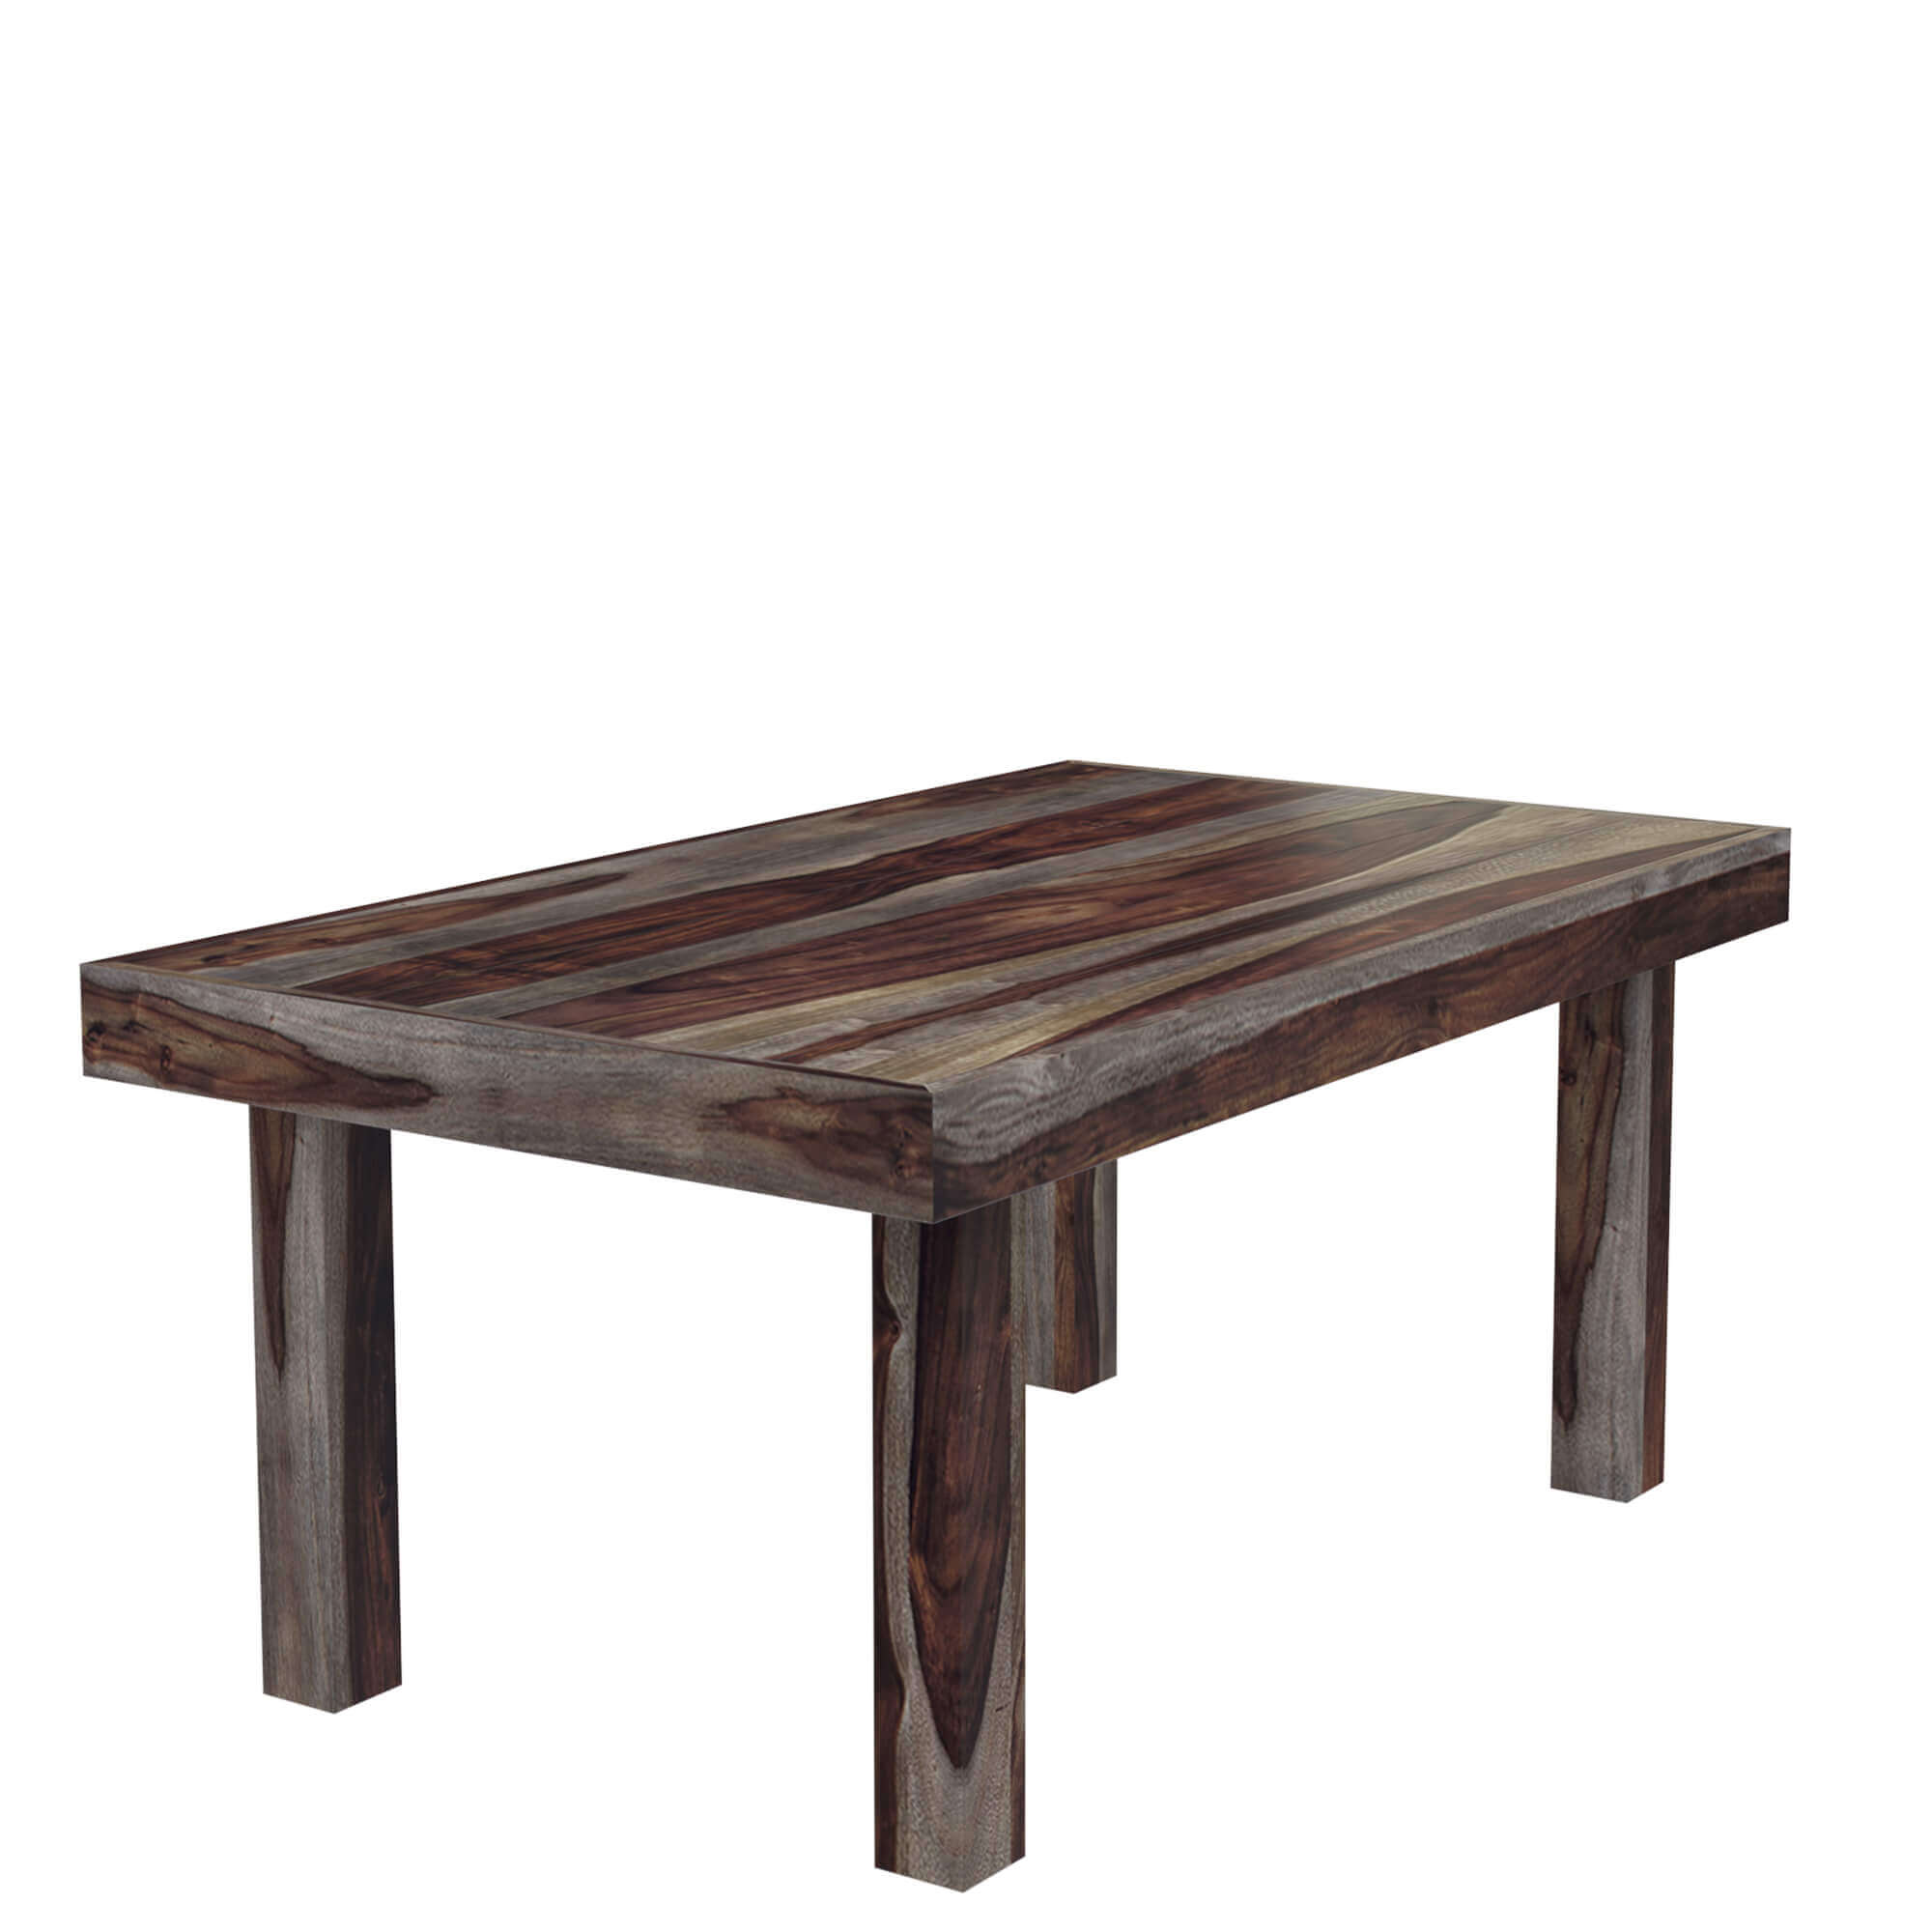 Frisco modern solid wood rectangular rustic dining room table for Wood modern dining table